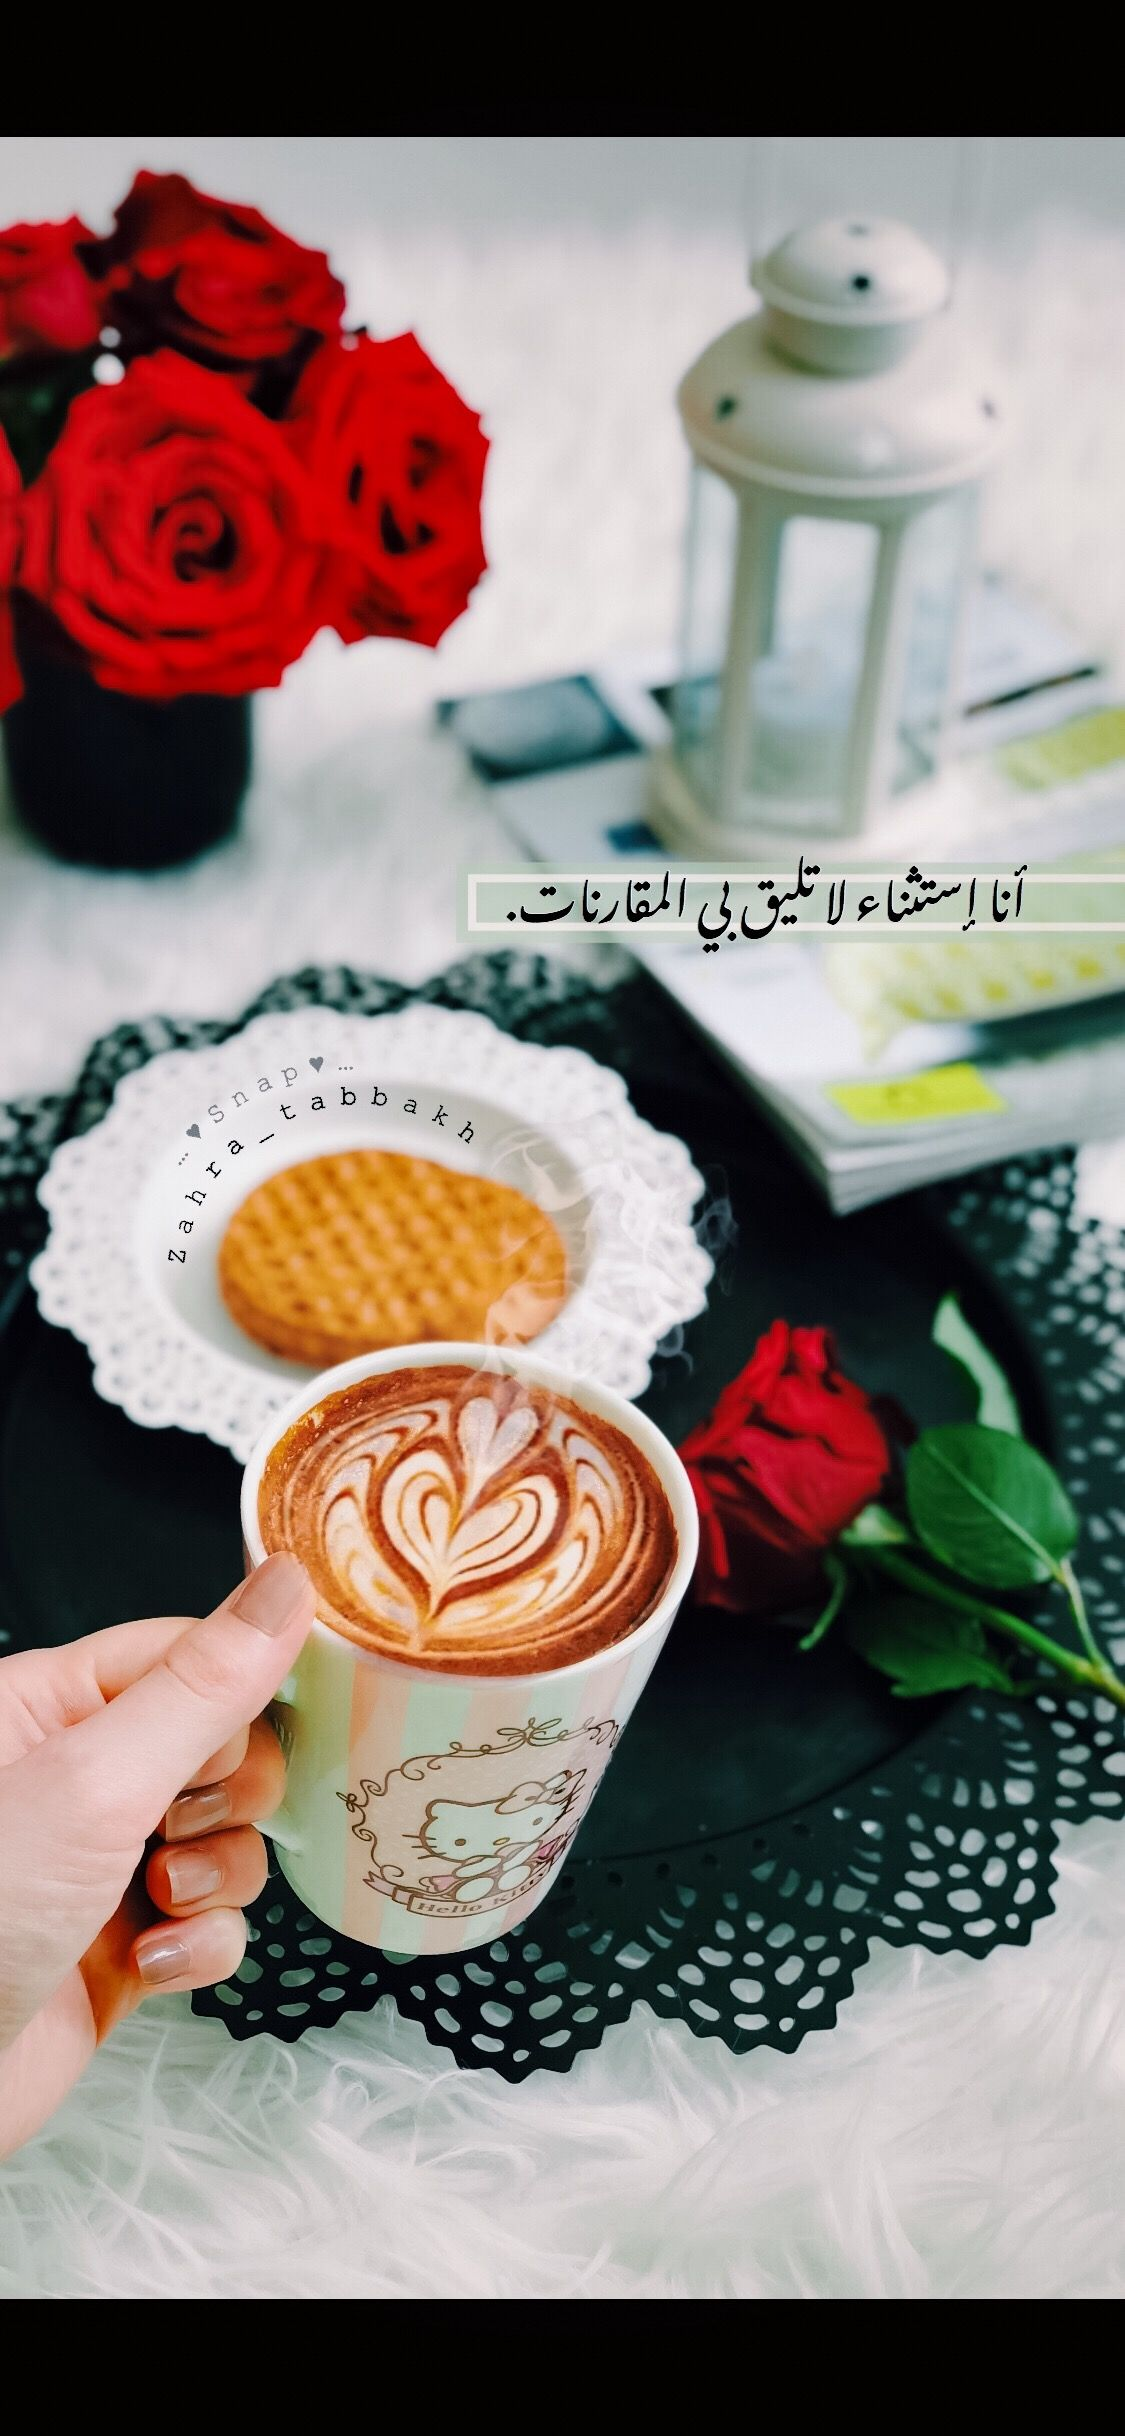 Pin By Zahra Tabbakh On بيسيات Snapchat Quotes Love Words Arabic Quotes